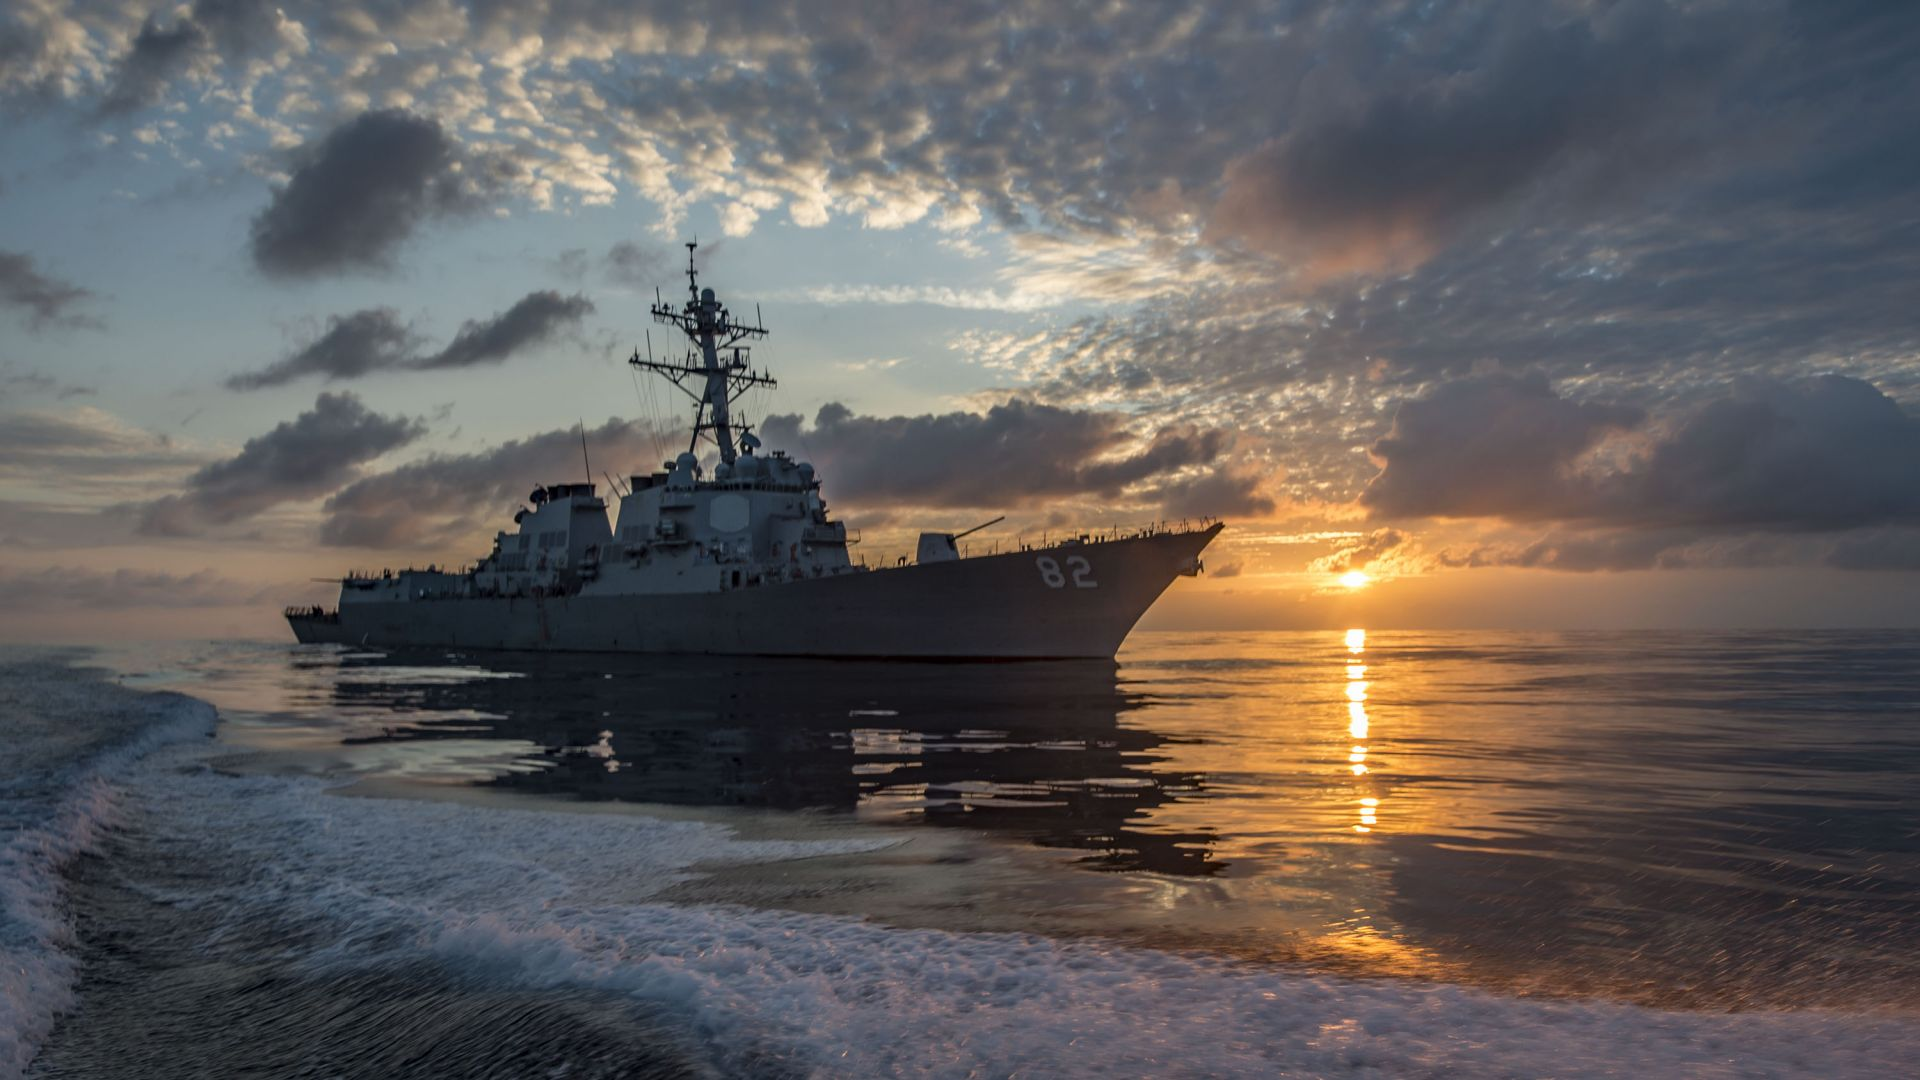 USS Lassen, DDG-82, Арли Бёрк, миноносец, ВМС США, USS Lassen (DDG-82), Arleigh Burke-class, guided missile destroyer, USA Navy (horizontal)